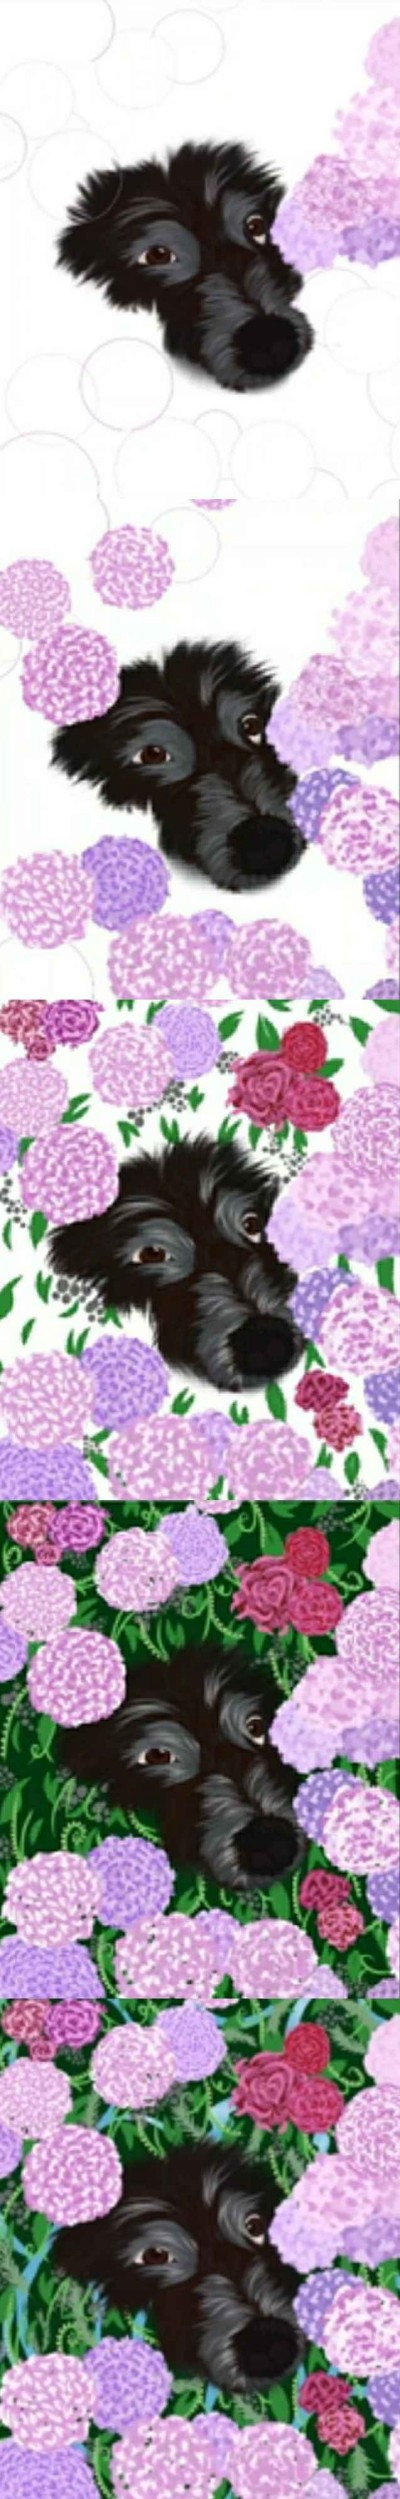 Dog in flowers drawing step by step   Cat_who_draws   Digital Drawing   PENUP